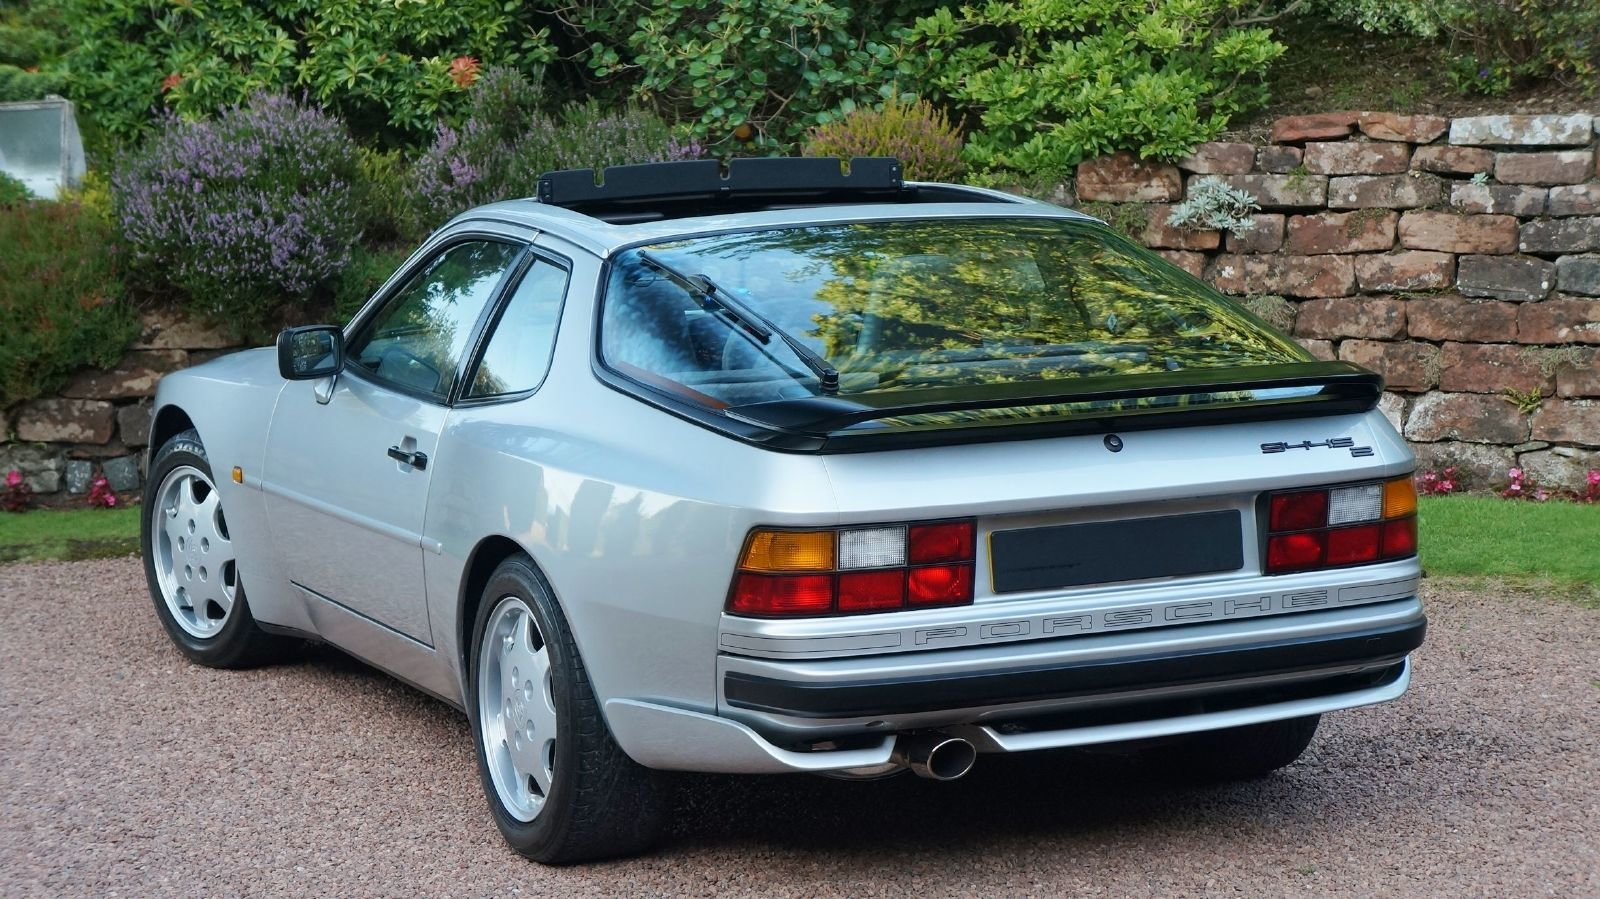 1991 944 s2 3.0 coupe crystal silver timewarp Epic  For Sale (picture 2 of 6)